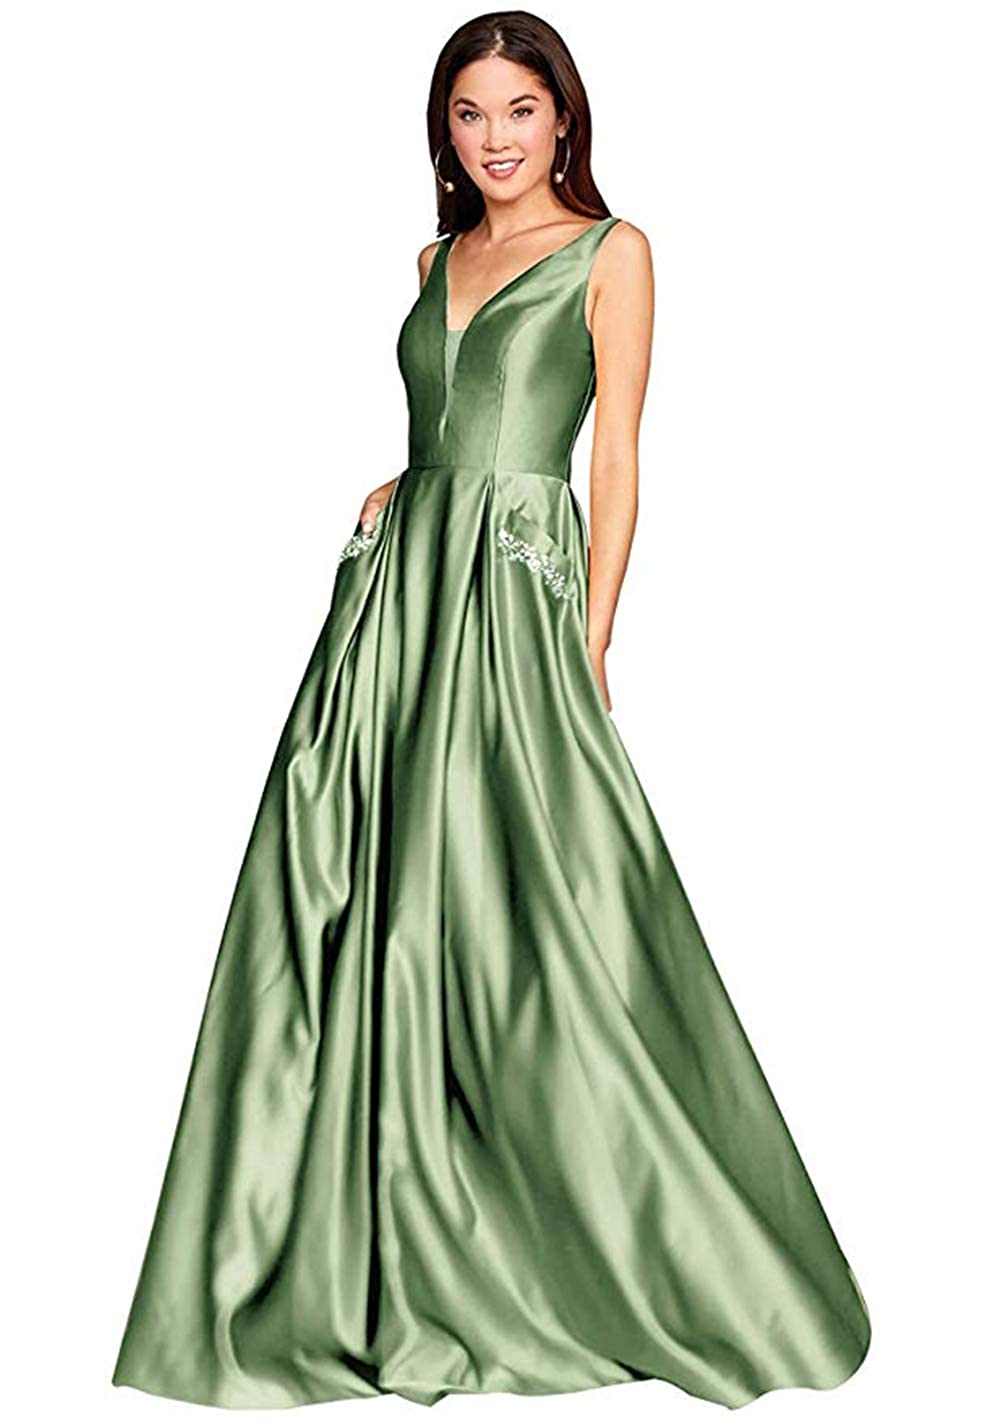 01sagegreen PROMNOVAS Women's V Neck Backless Beaded Satin Prom Dress Long Formal Evening Gown with Pockets